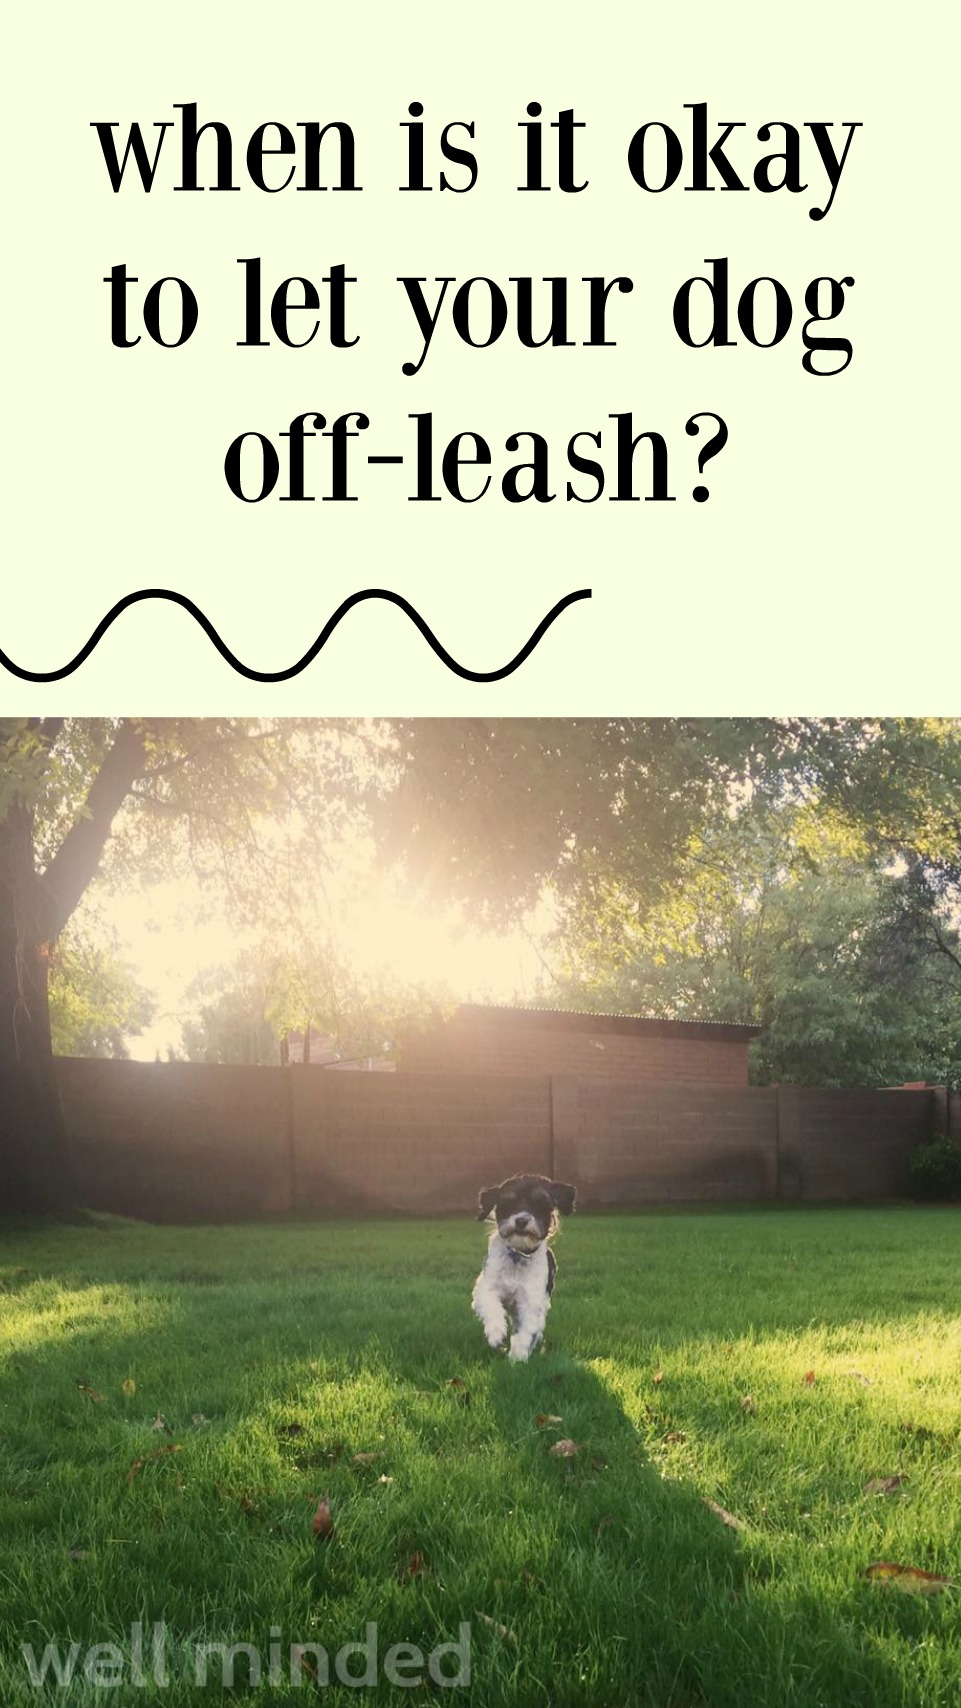 When is it okay to let your dog off-leash? wellmindedpets.com